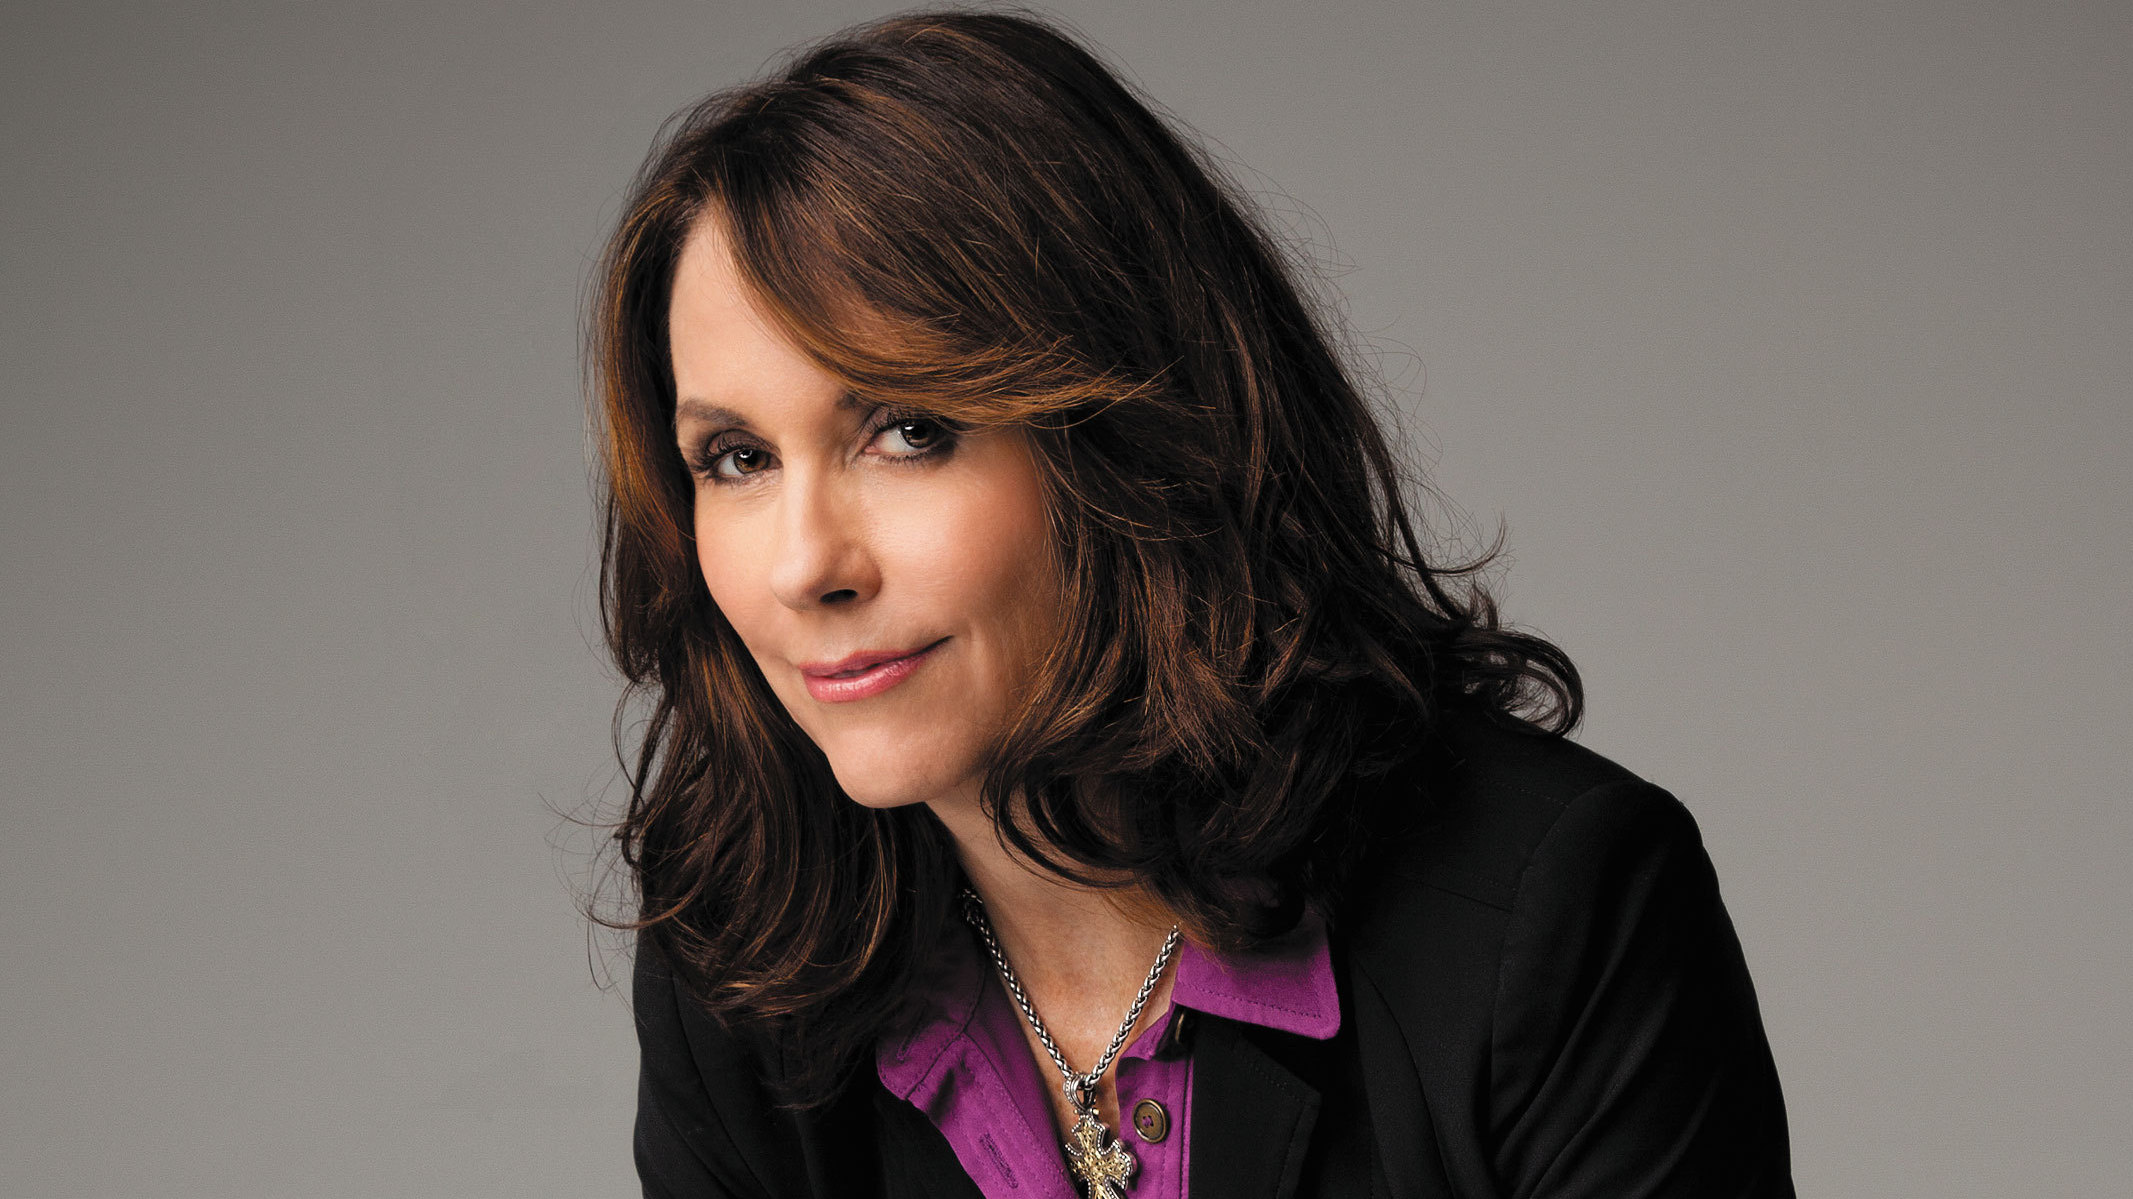 Mary Karr On Writing Memoirs: 'No Doubt I've Gotten A Million Things Wrong'